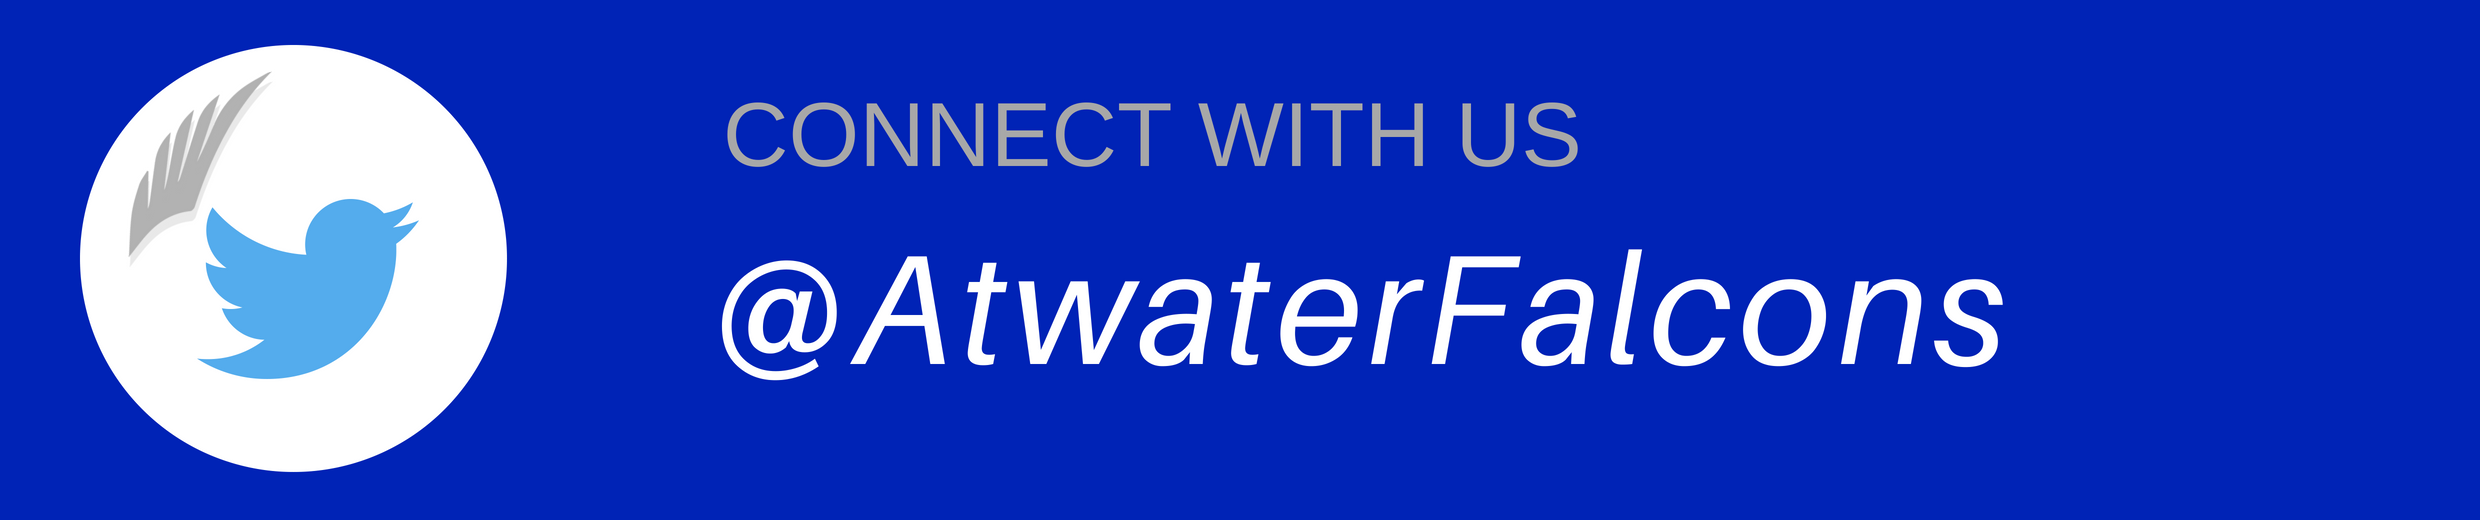 Twitter @AtwaterFalcons